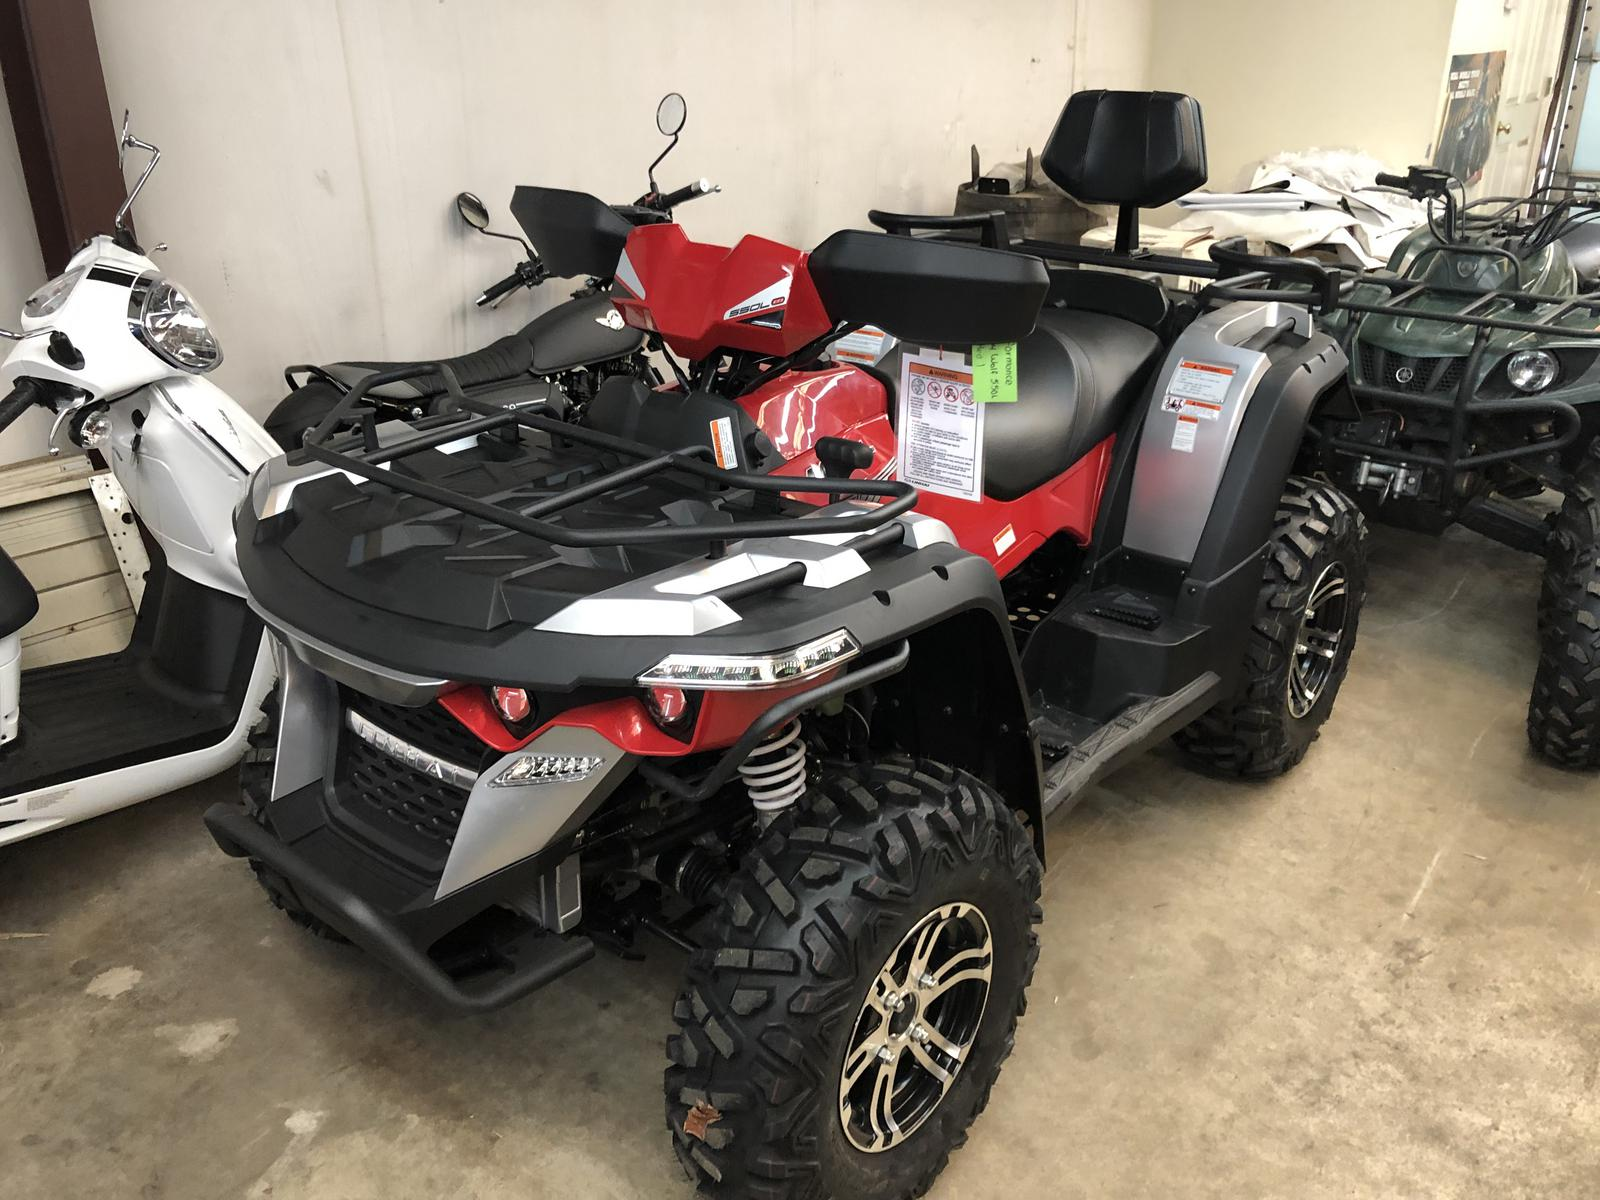 Inventory Performance Plus Motorcycle ATV Specialist, Inc  Memphis